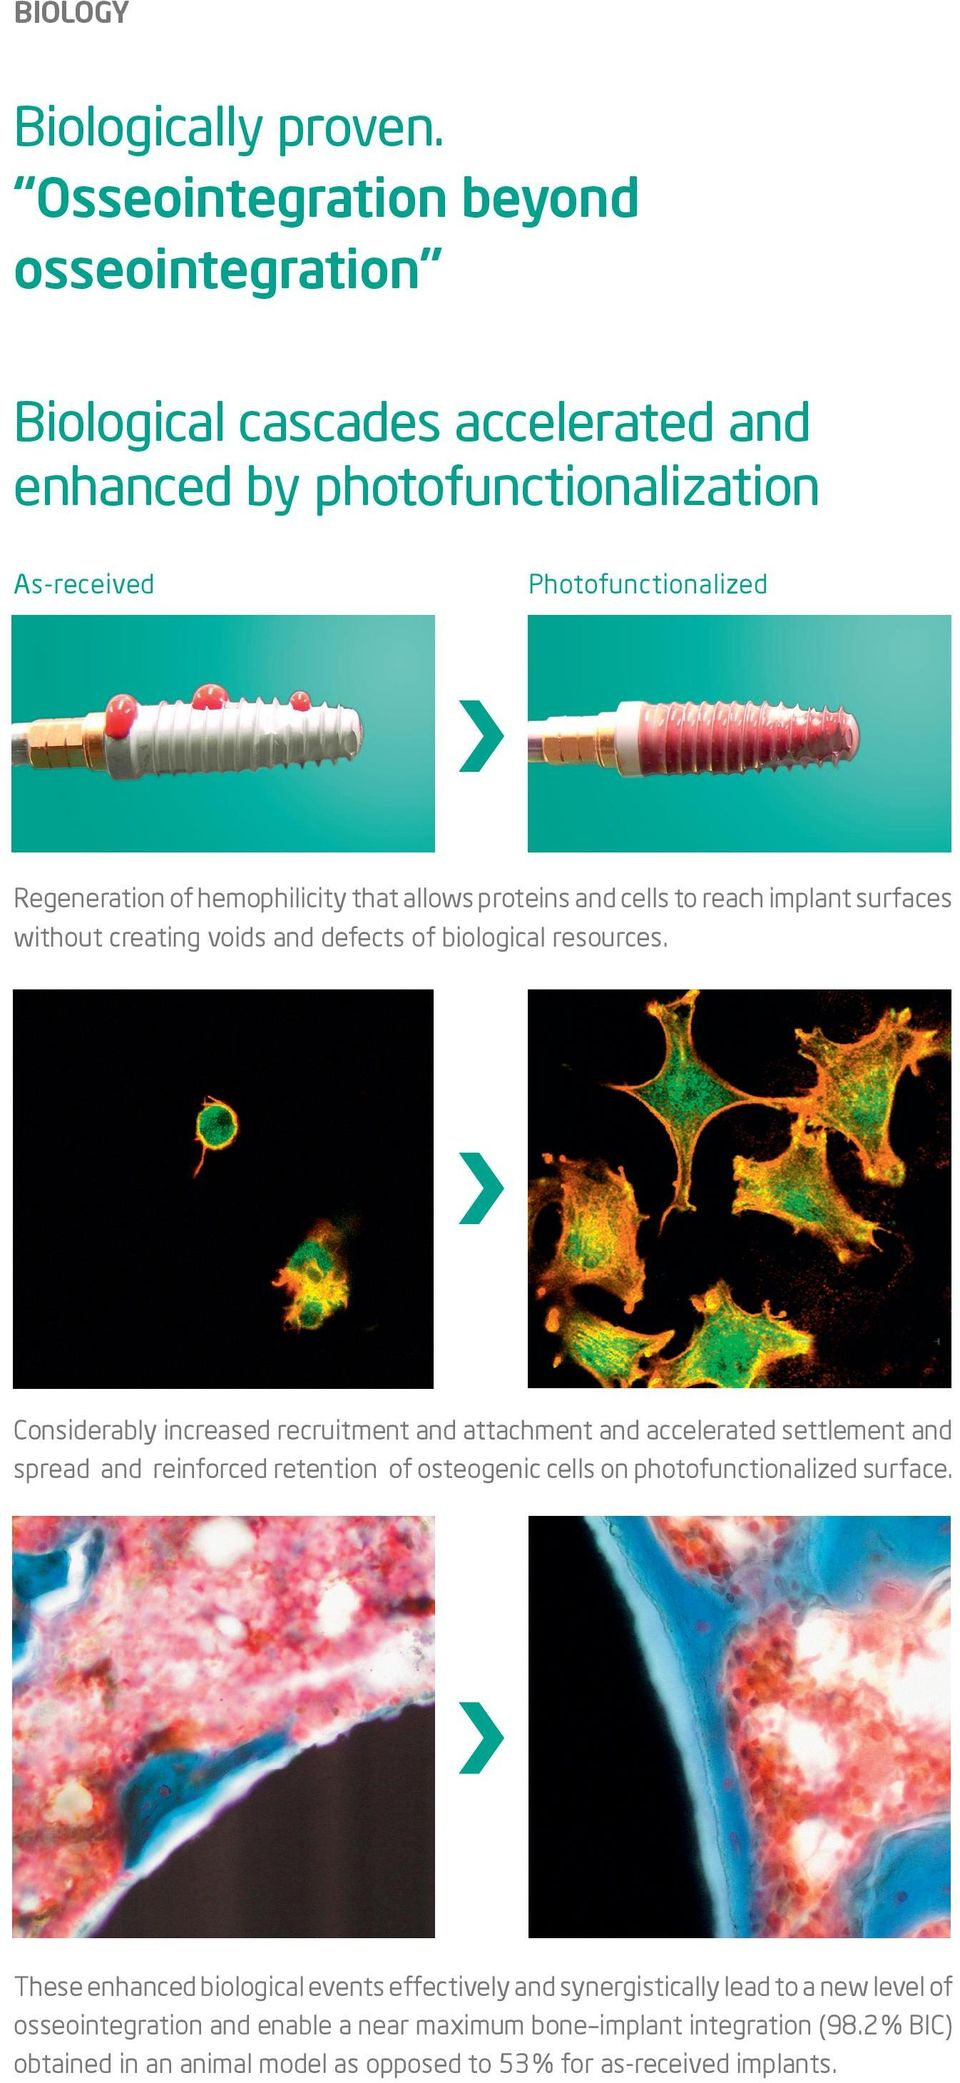 allows proteins and cells to reach implant surfaces without creating voids and defects of biological resources.